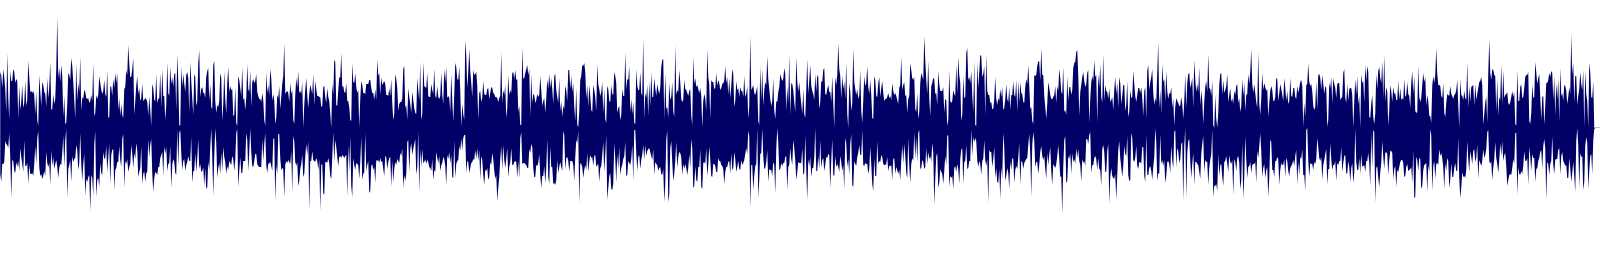 waveform of track #149892